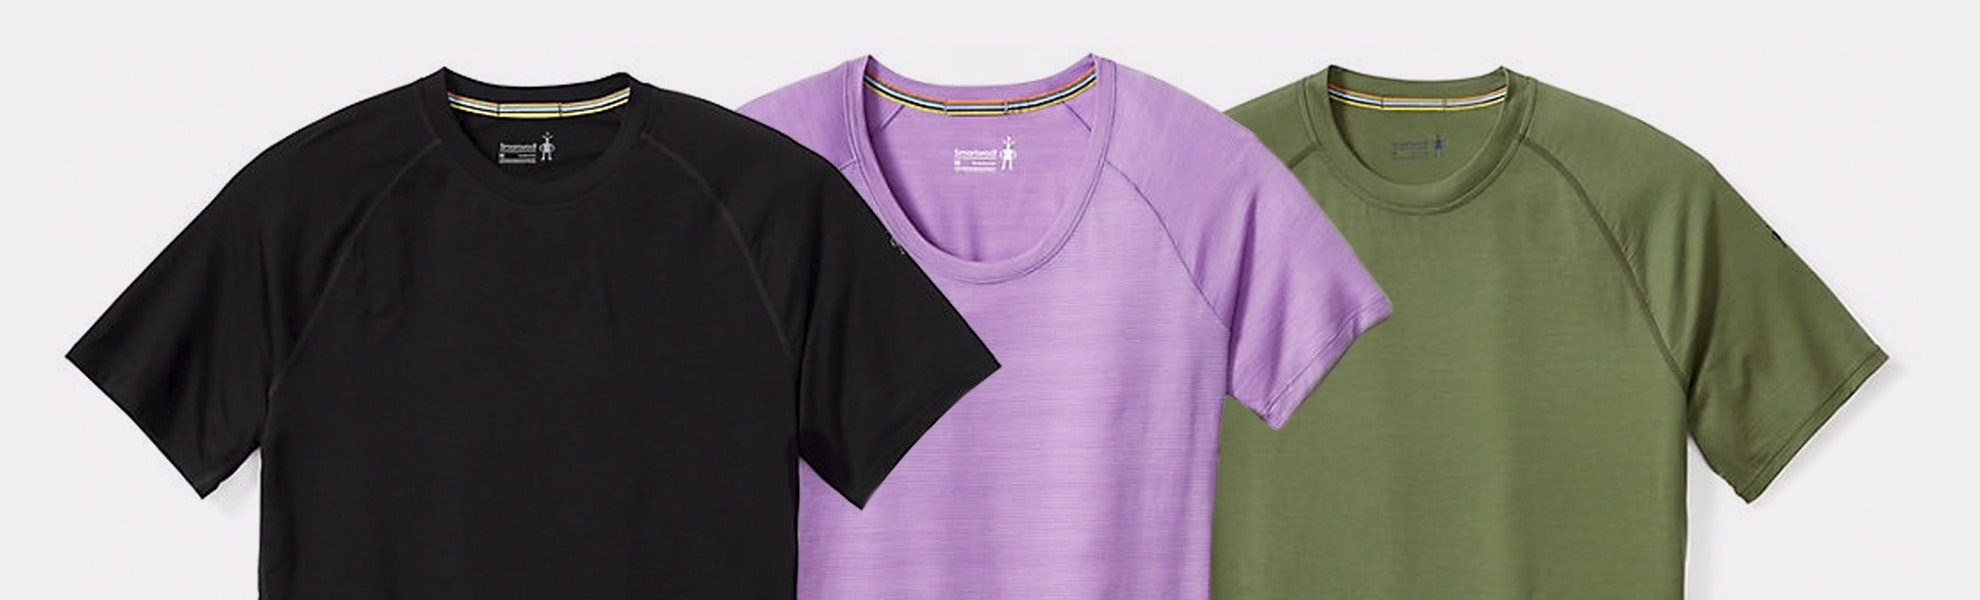 Smartwool Merino 150 Short-Sleeve Base Layers